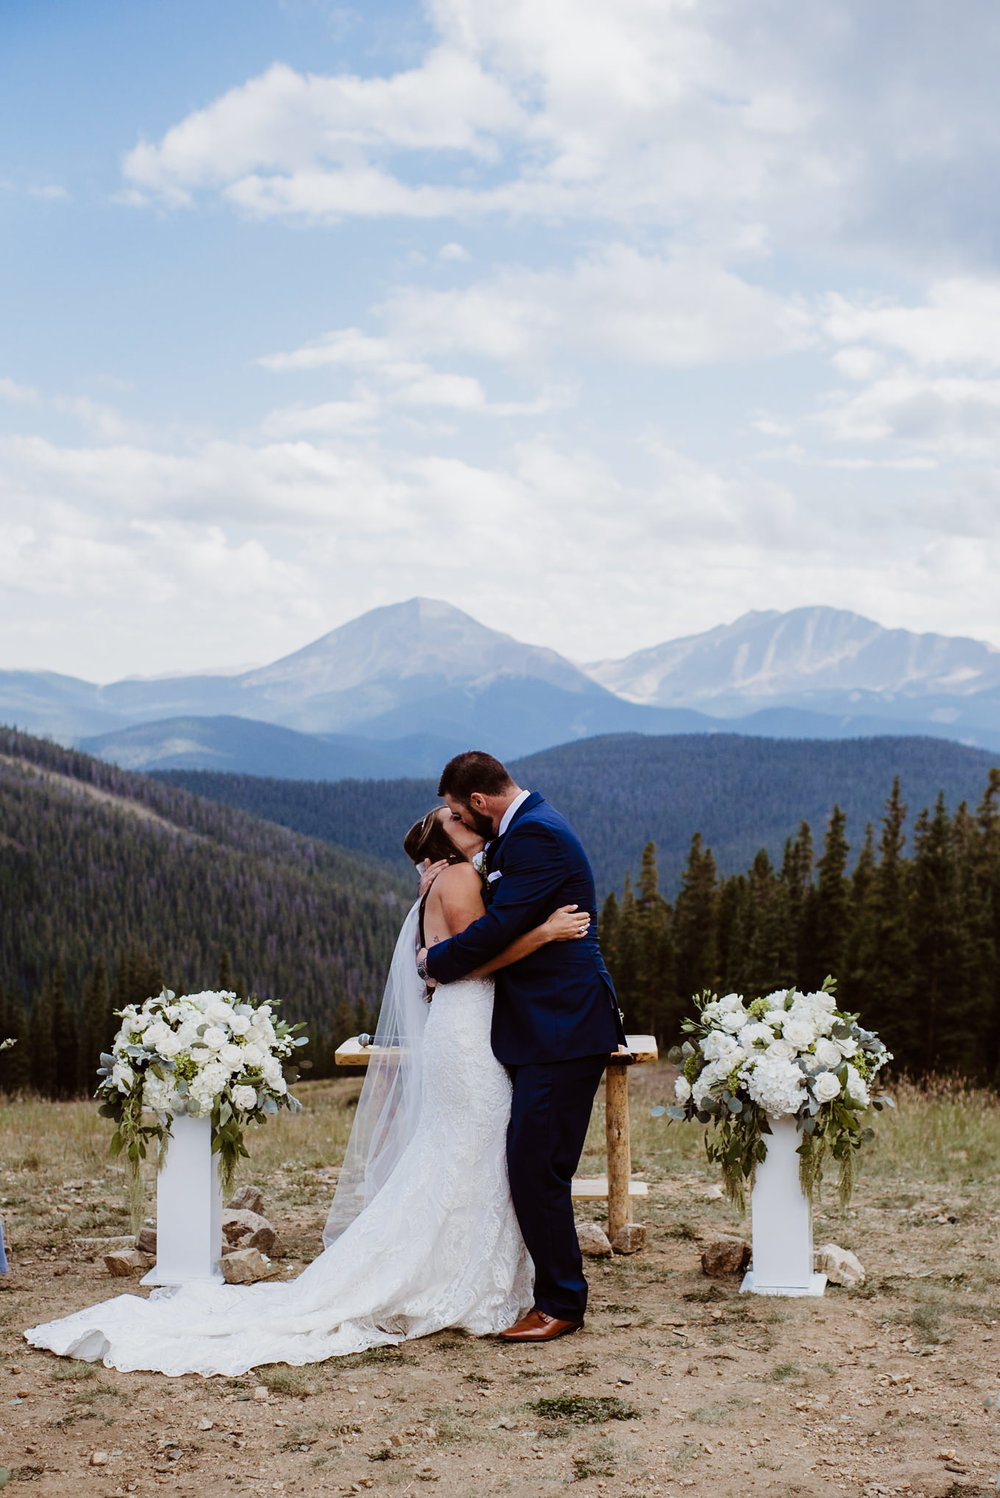 First kiss at TImber Ridge at Keystone, Colorado mountain wedding